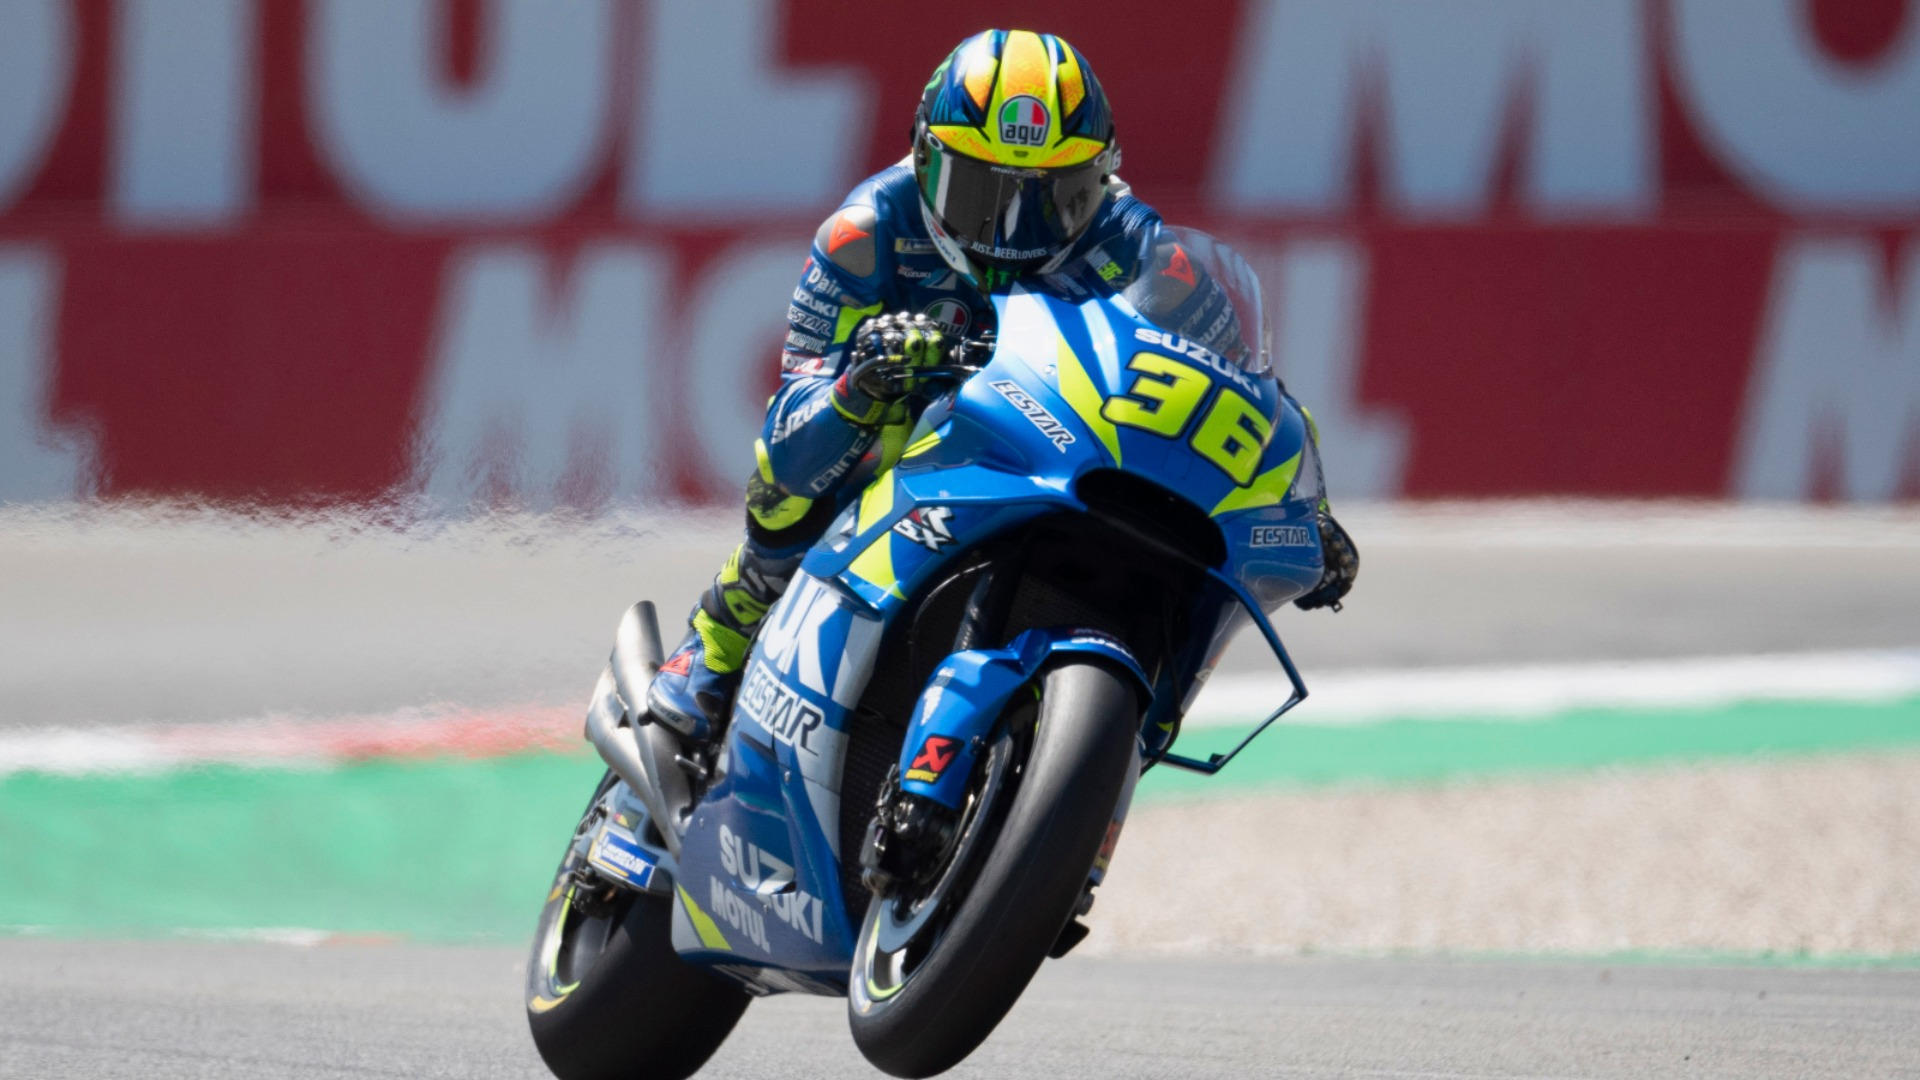 Team Suzuki Ecstar will again be without Joan Mir at the British Grand Prix, as the Spaniard has not yet made a full recovery.